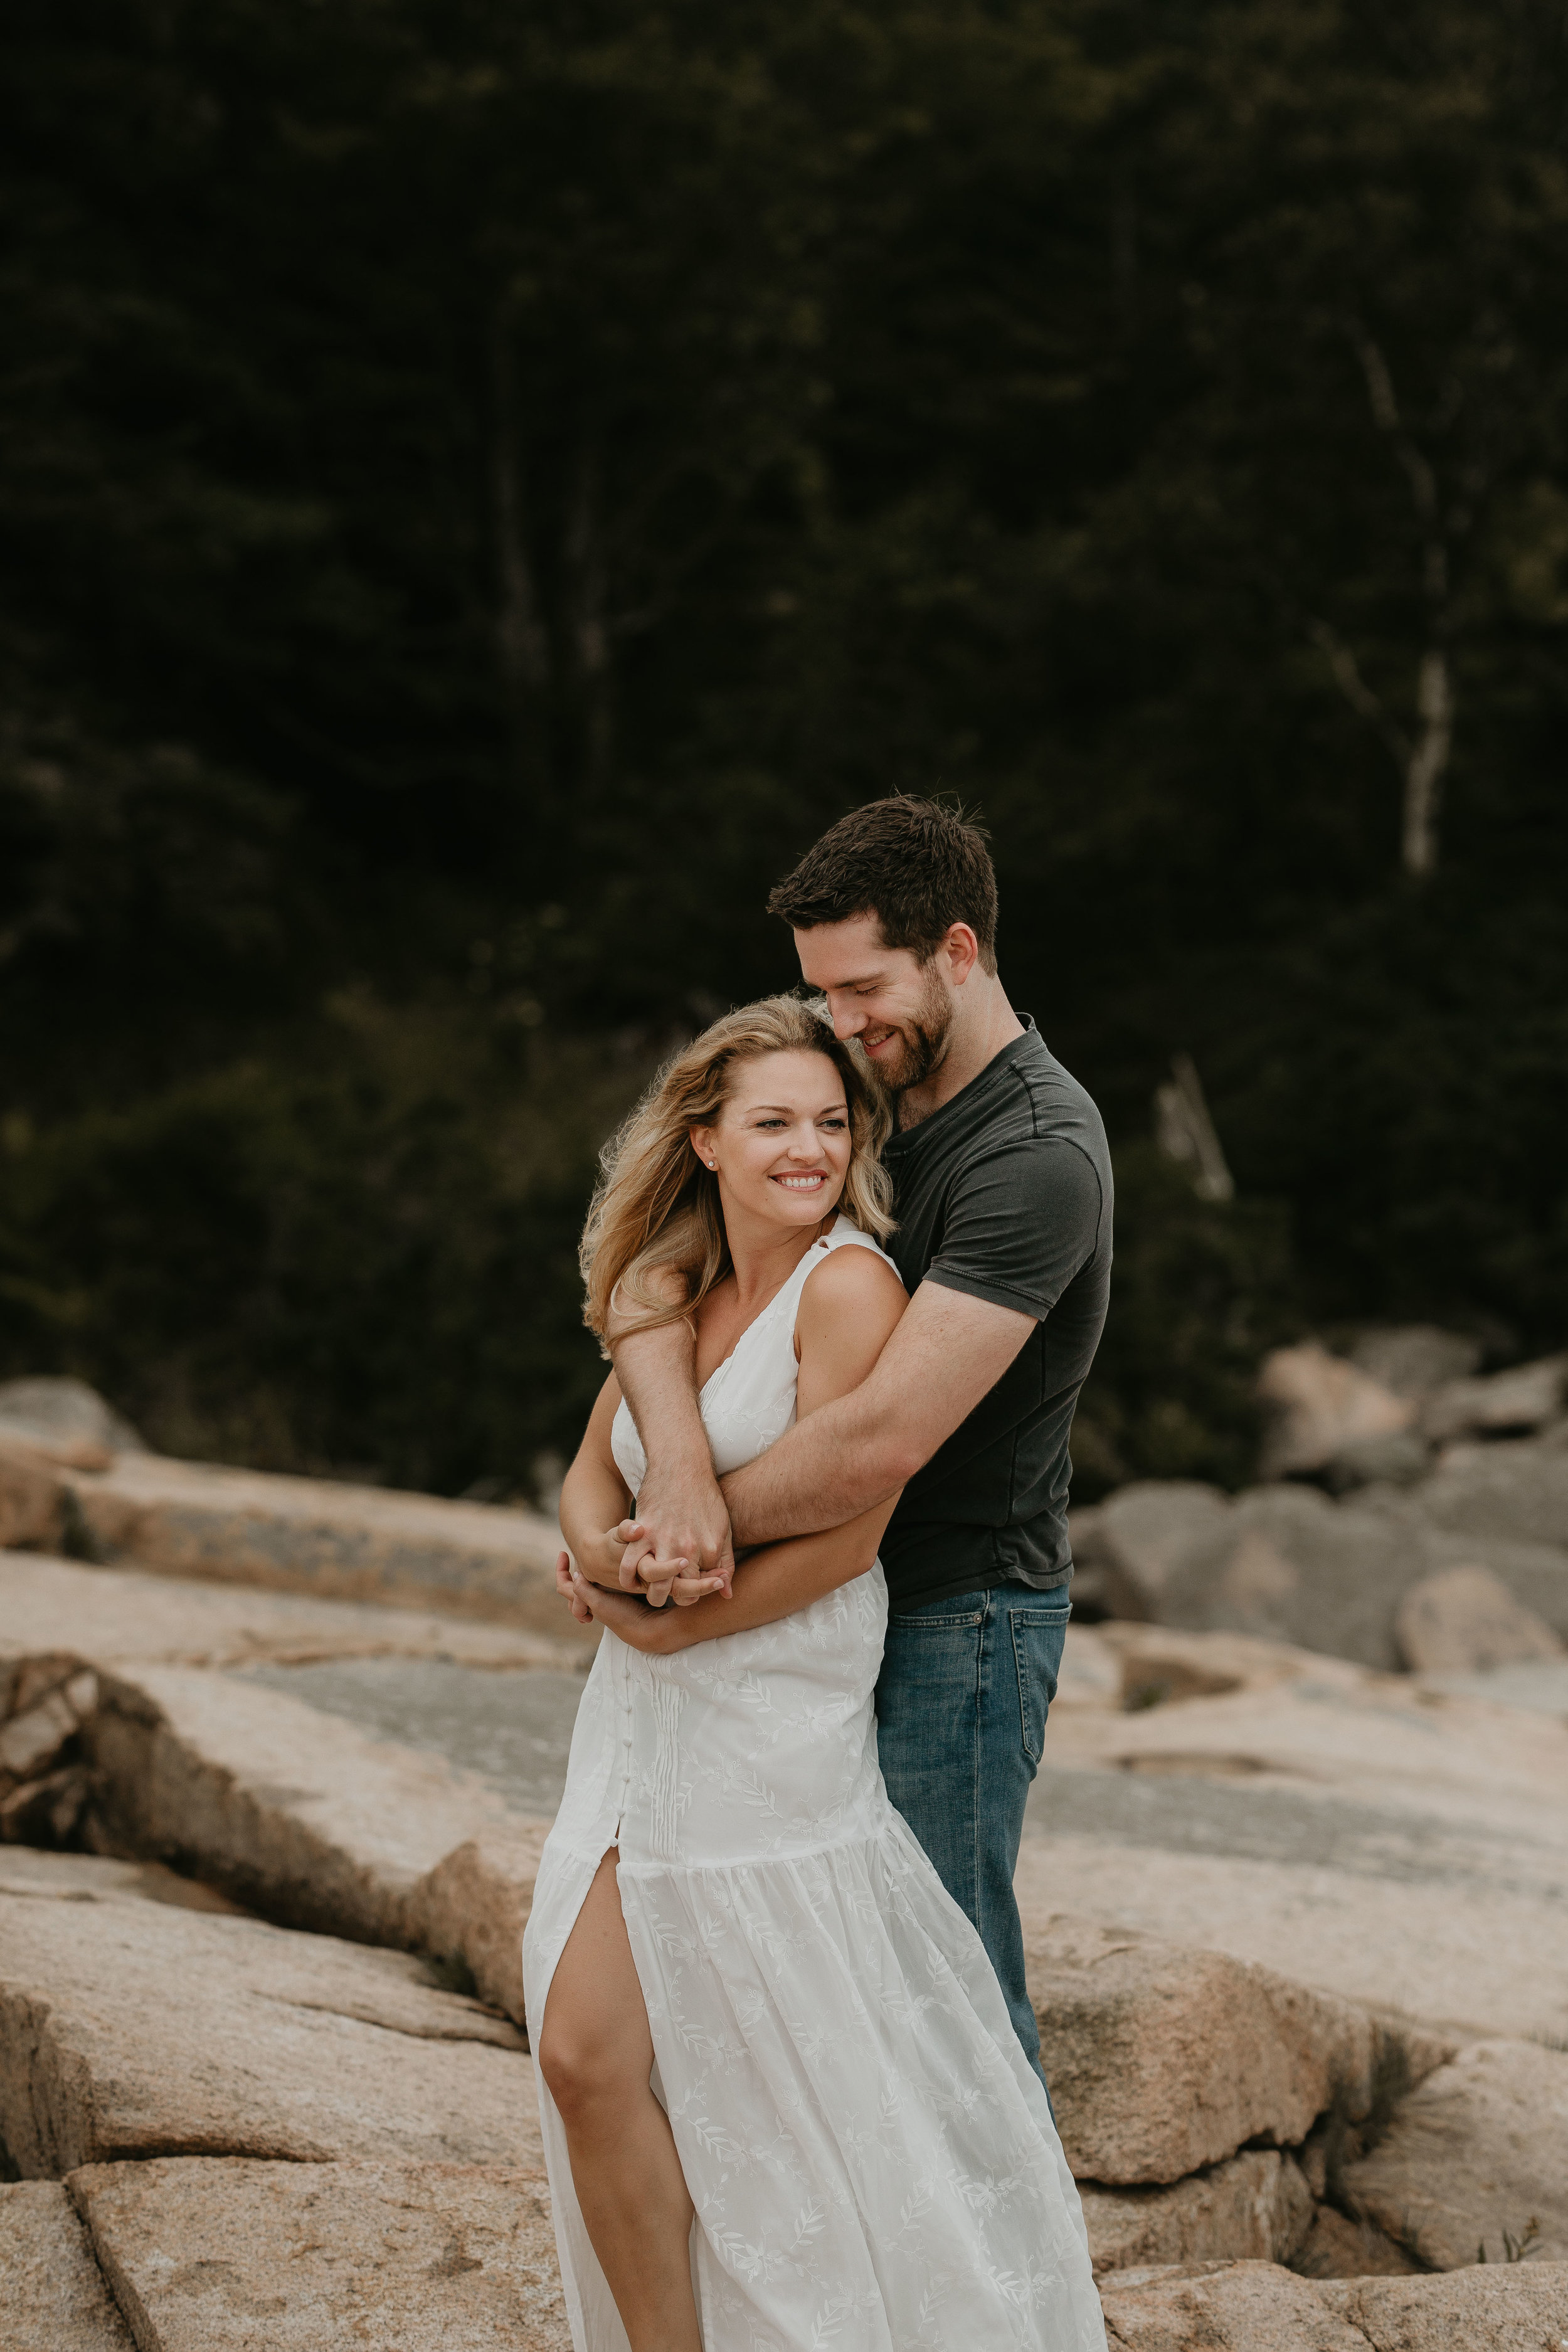 nicole-daacke-photography-acadia-national-park-adventurous-engagement-session-photos-otter-cliffs-forests-coastline-sand-beach-adventure-session-bar-harbor-mt-desert-island-elopement-fall-bass-harbor-lighthouse-wedding-maine-landscape-photographer-25.jpg